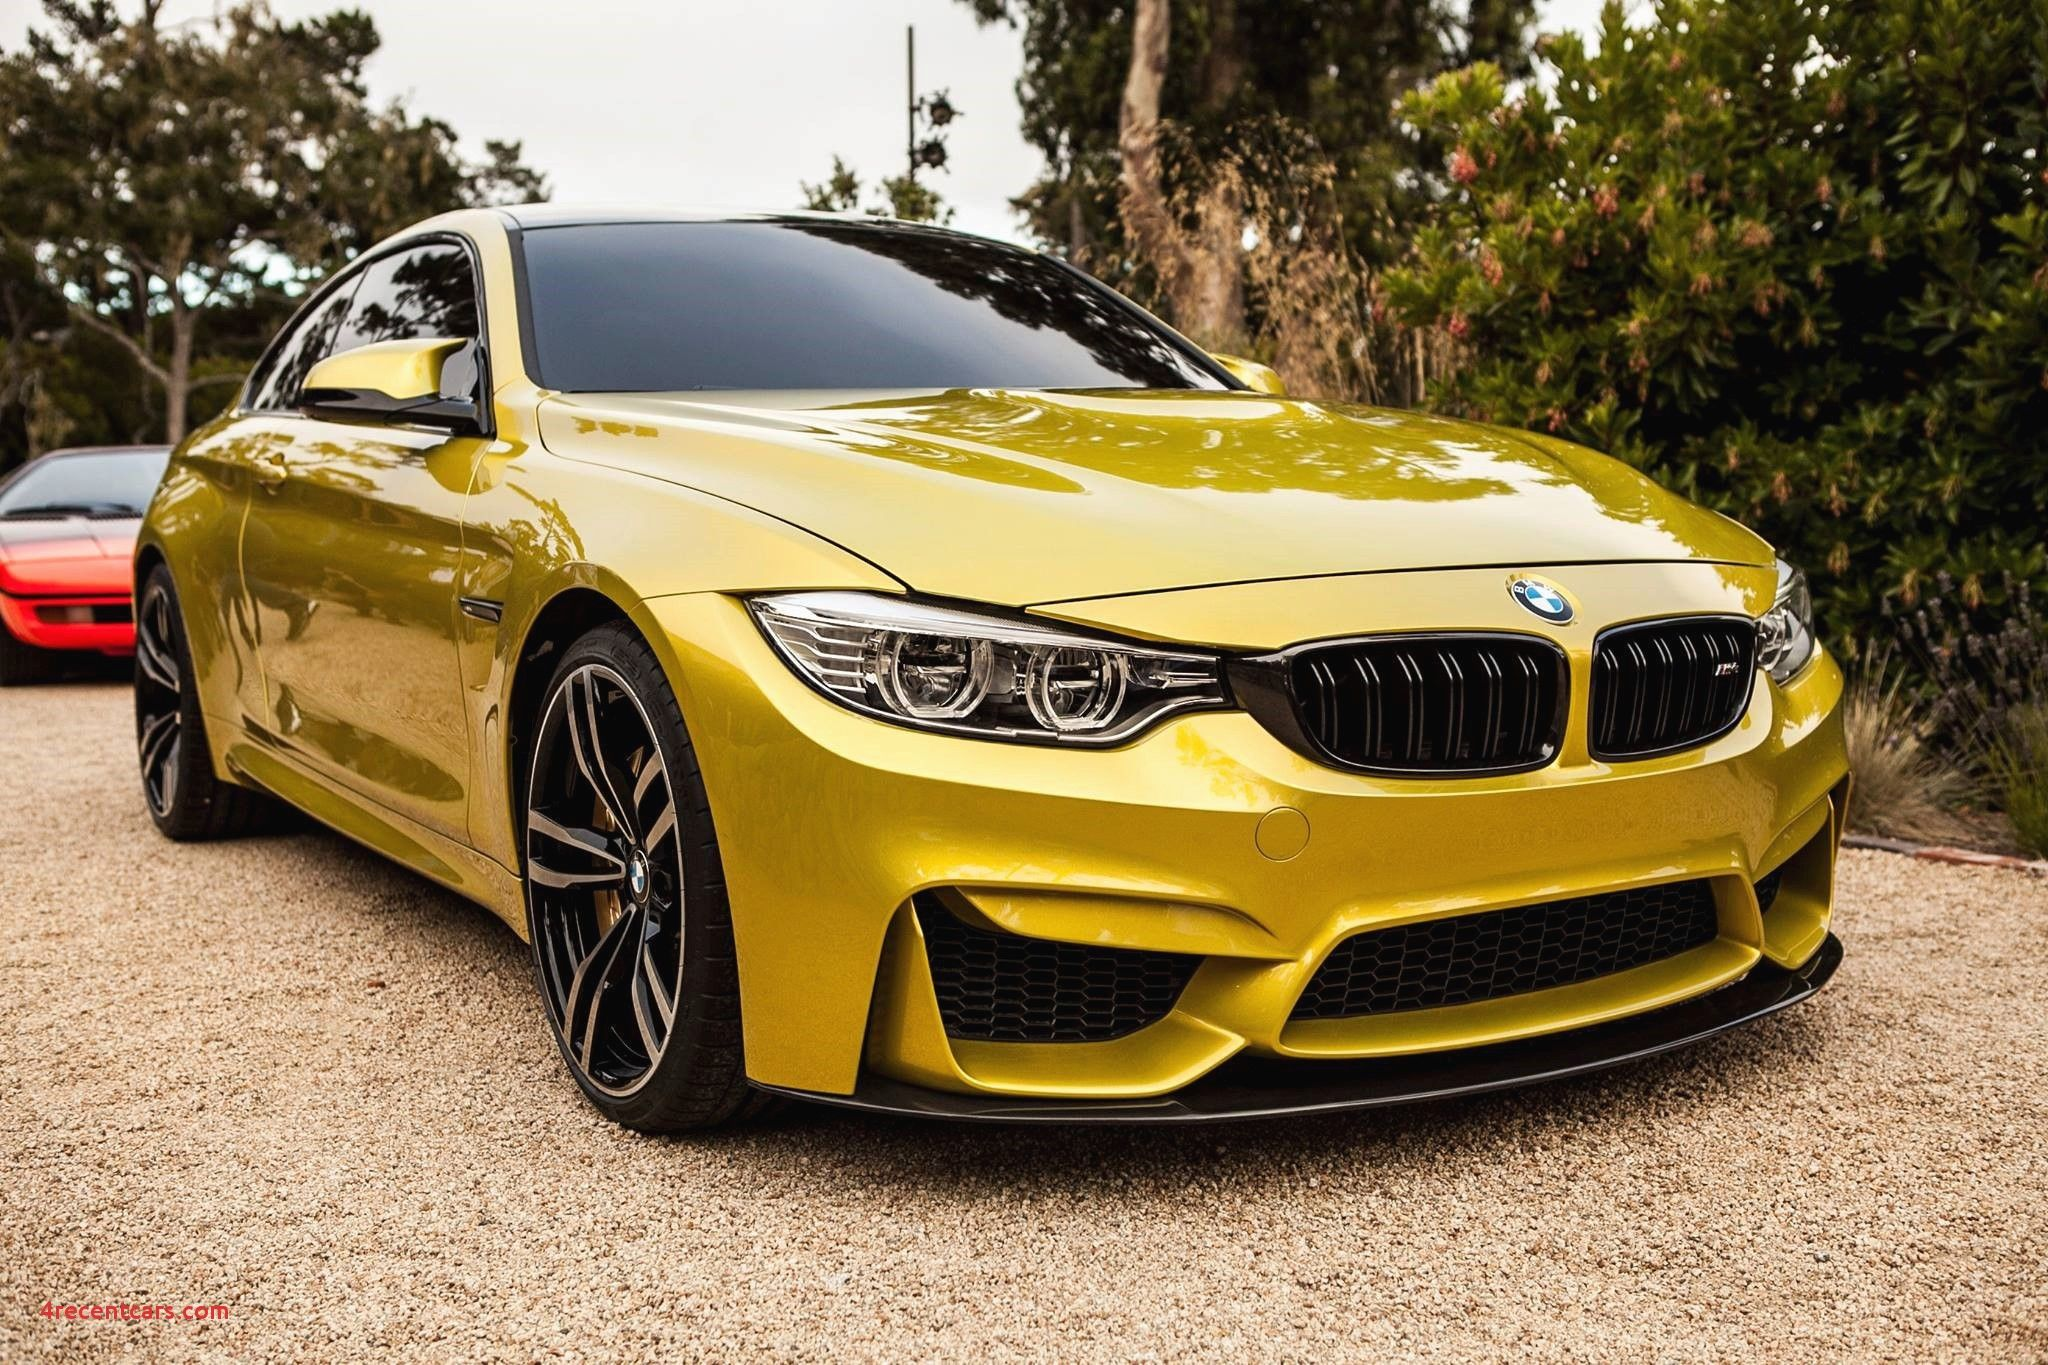 Bmw Cars Wallpapers Top Free Bmw Cars Backgrounds Wallpaperaccess